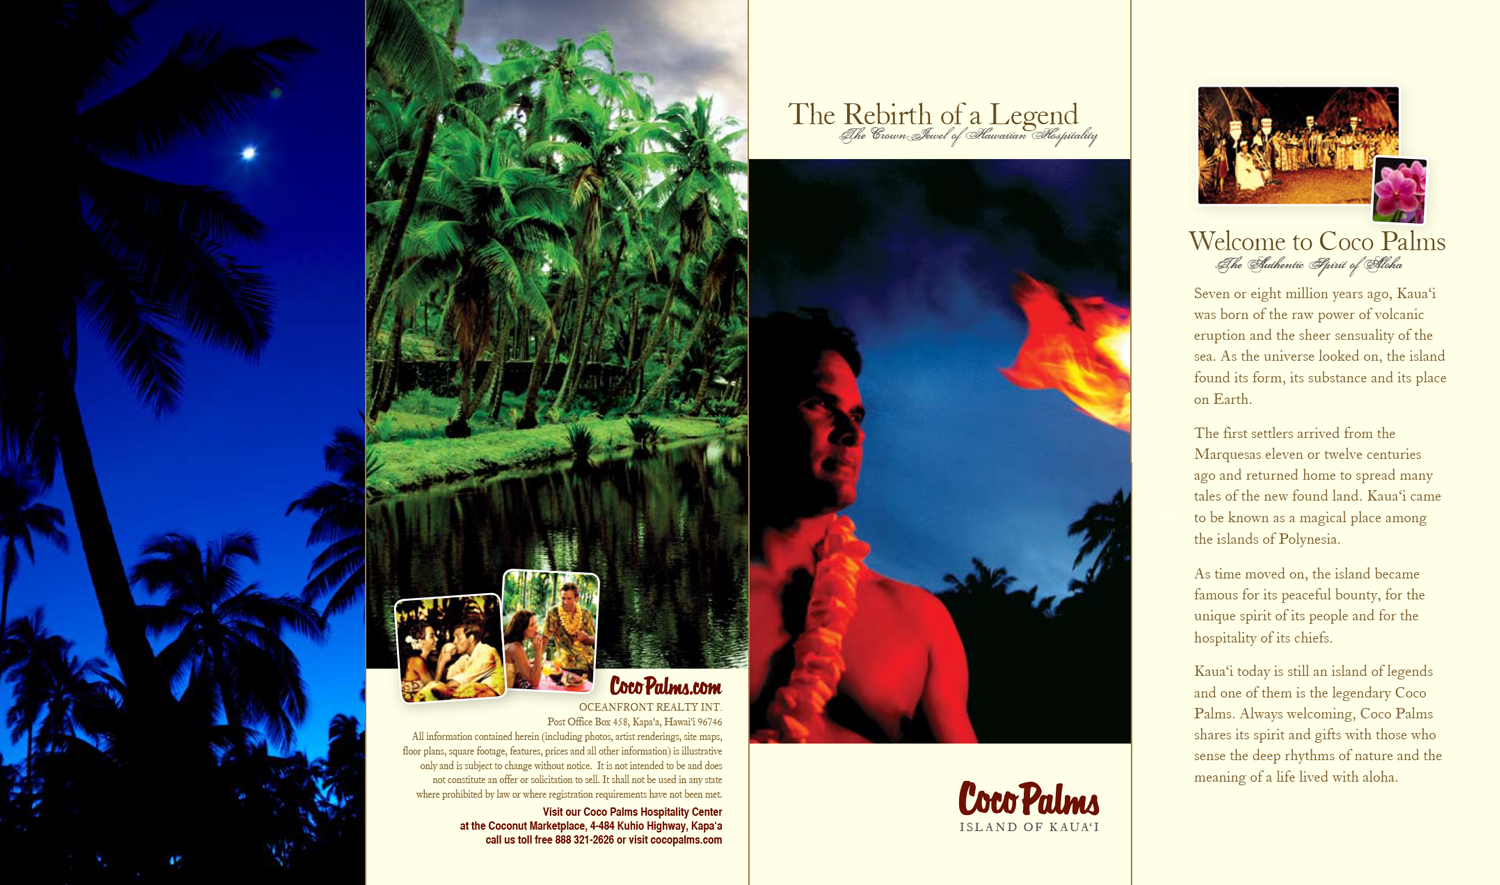 Coco-Palms-TriFold-small.jpg